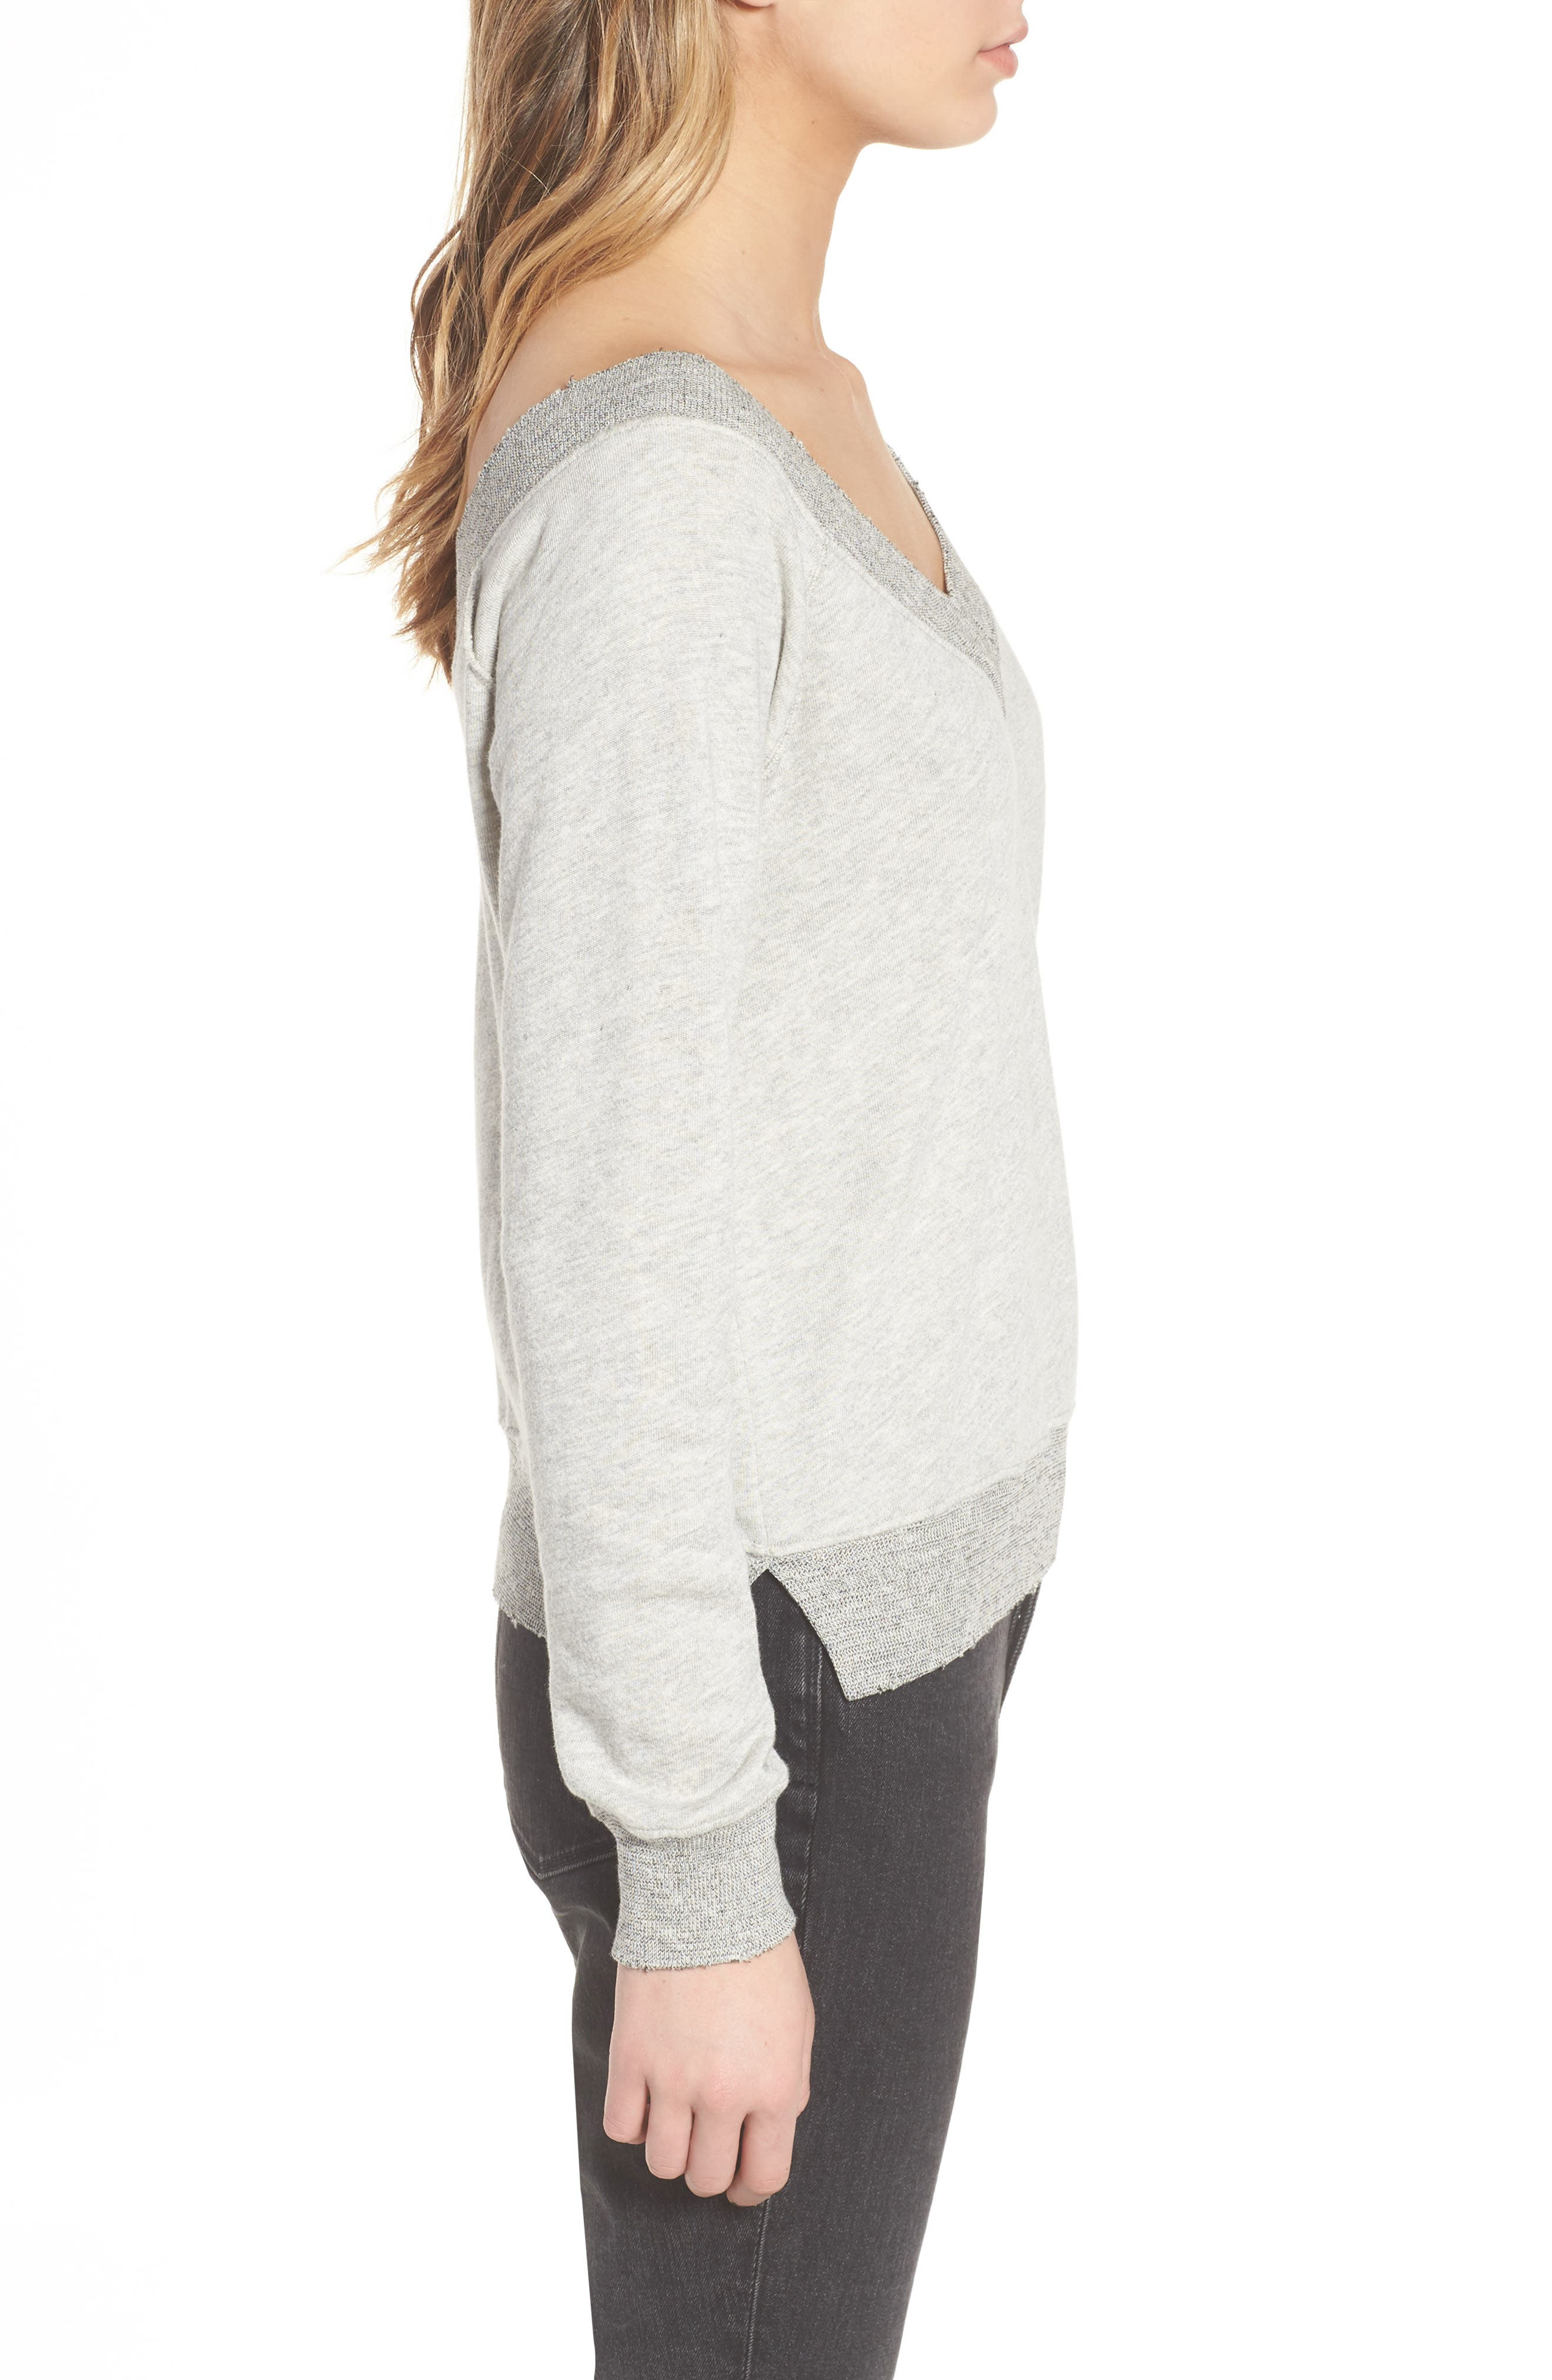 Mayer V-Neck Sweatshirt,                             Alternate thumbnail 3, color,                             002